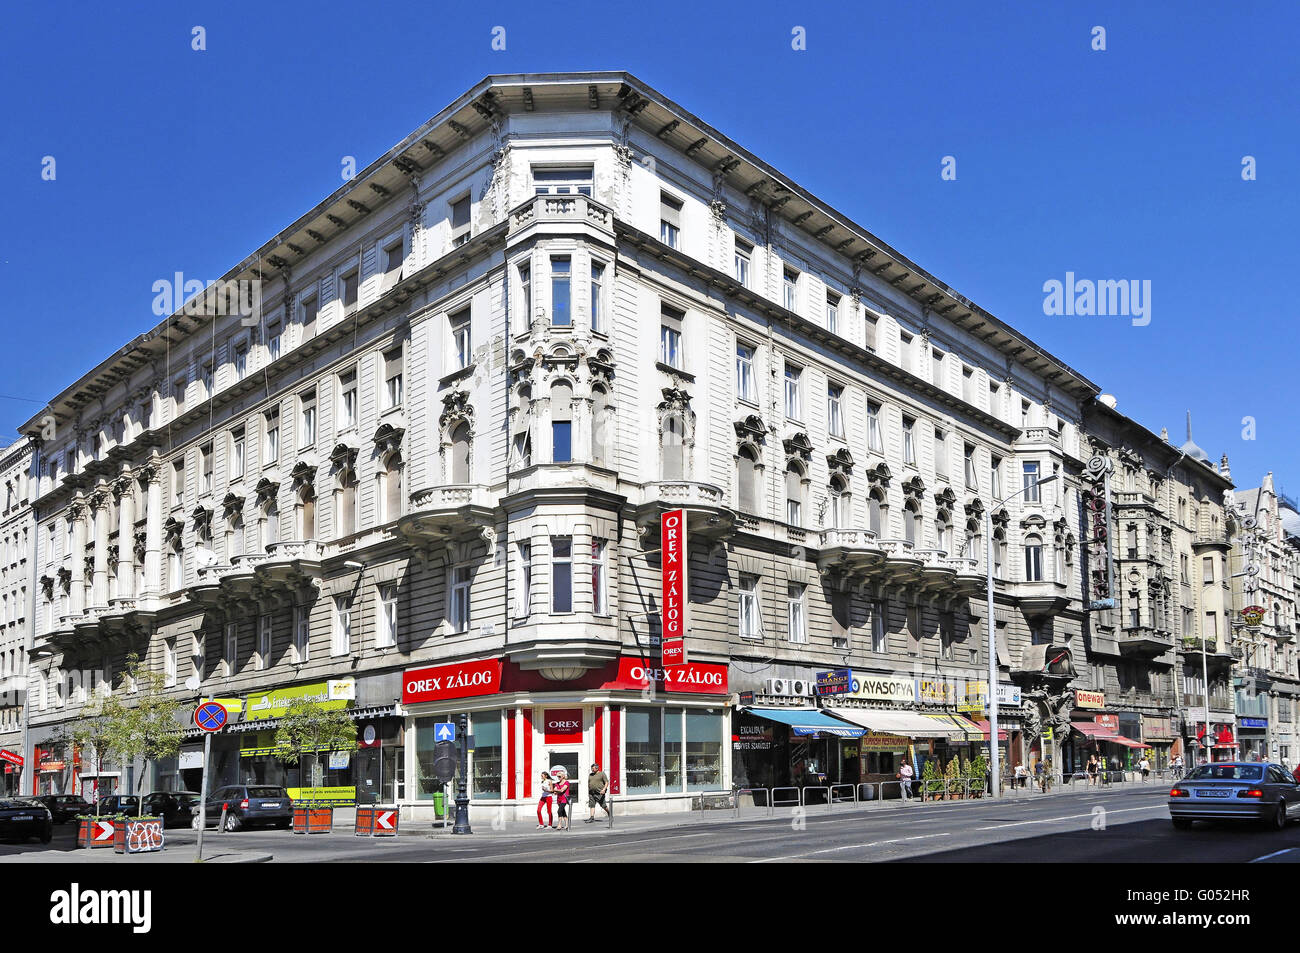 Pest district with restored buildings from the tur Stock Photo